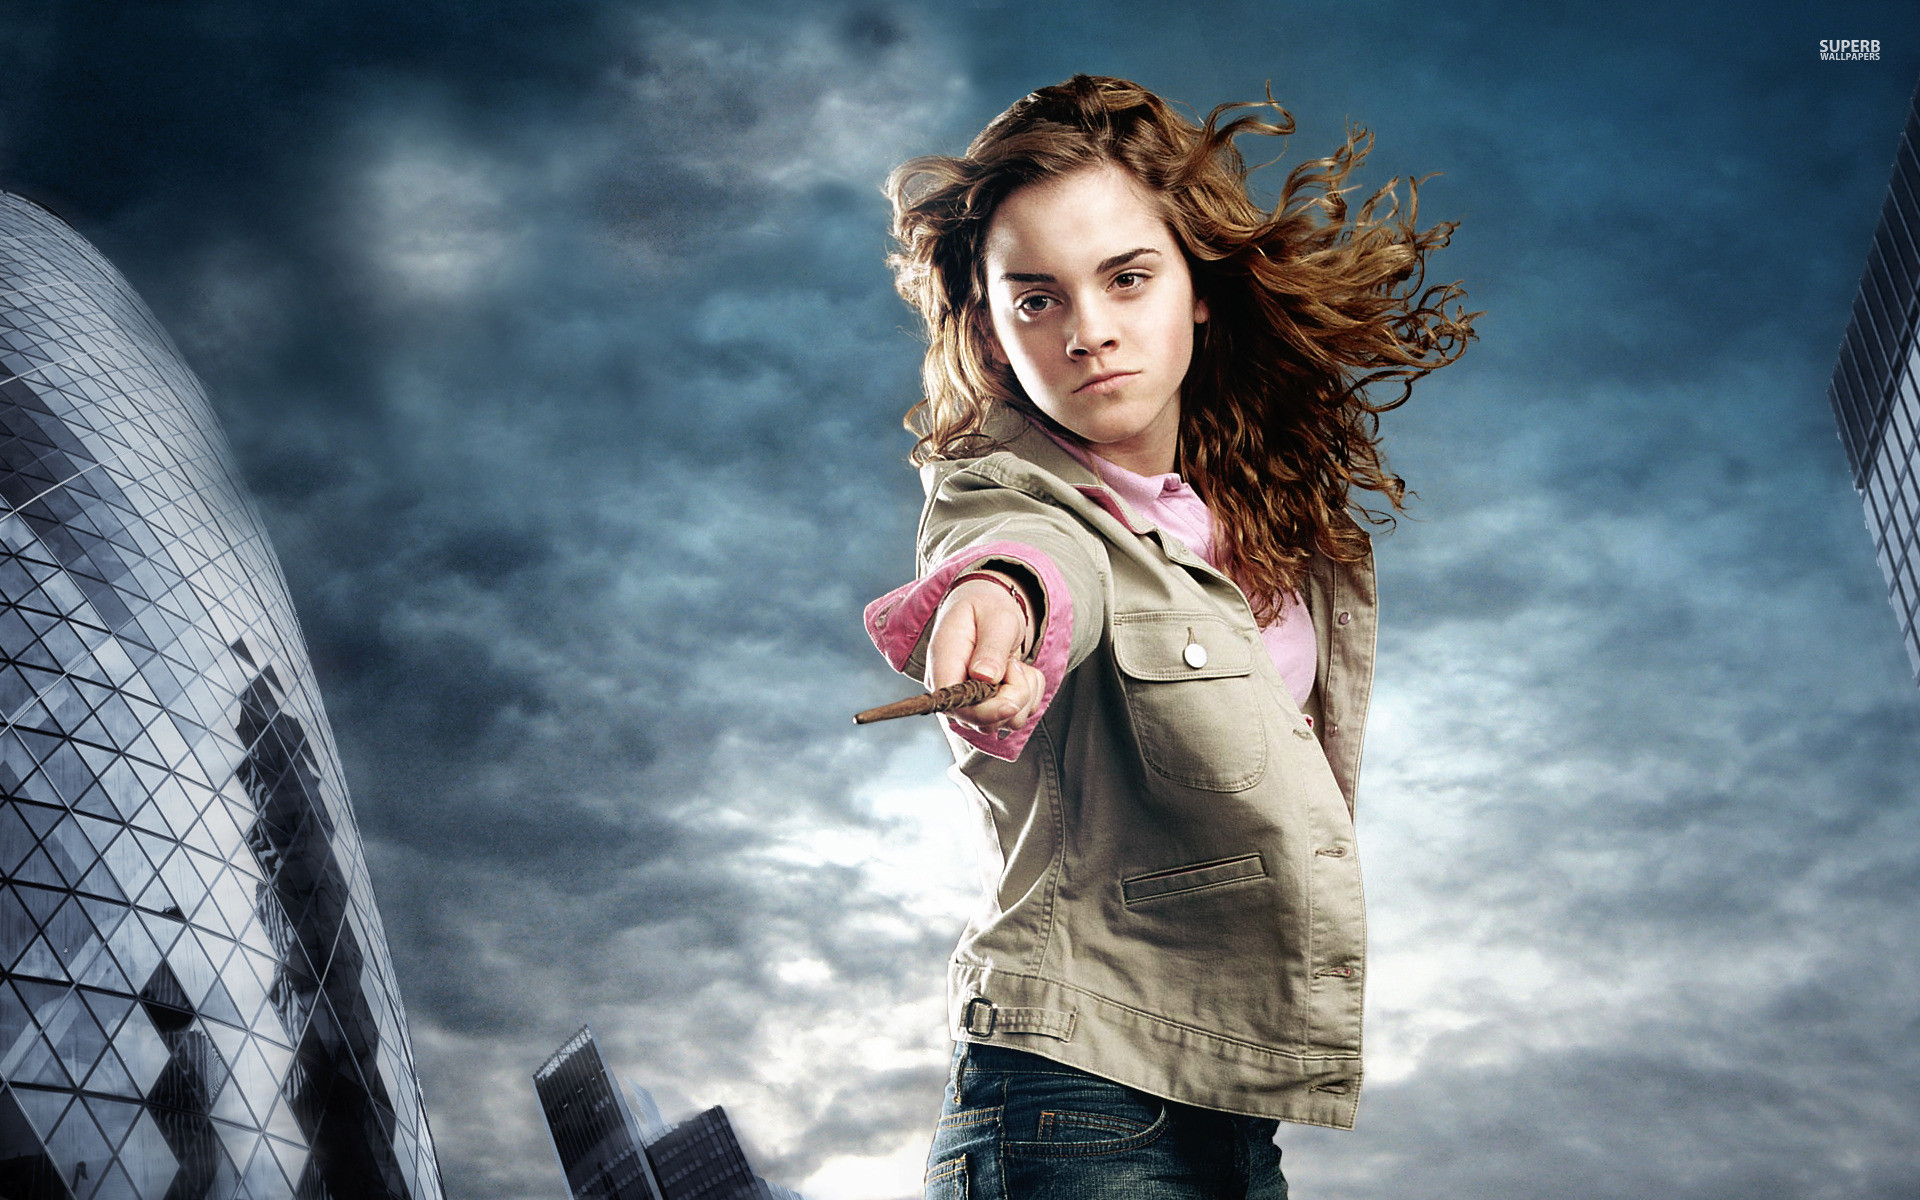 harry potter android wallpaper Harry Potter wallpapers HD Desktop Wallpapers  for android